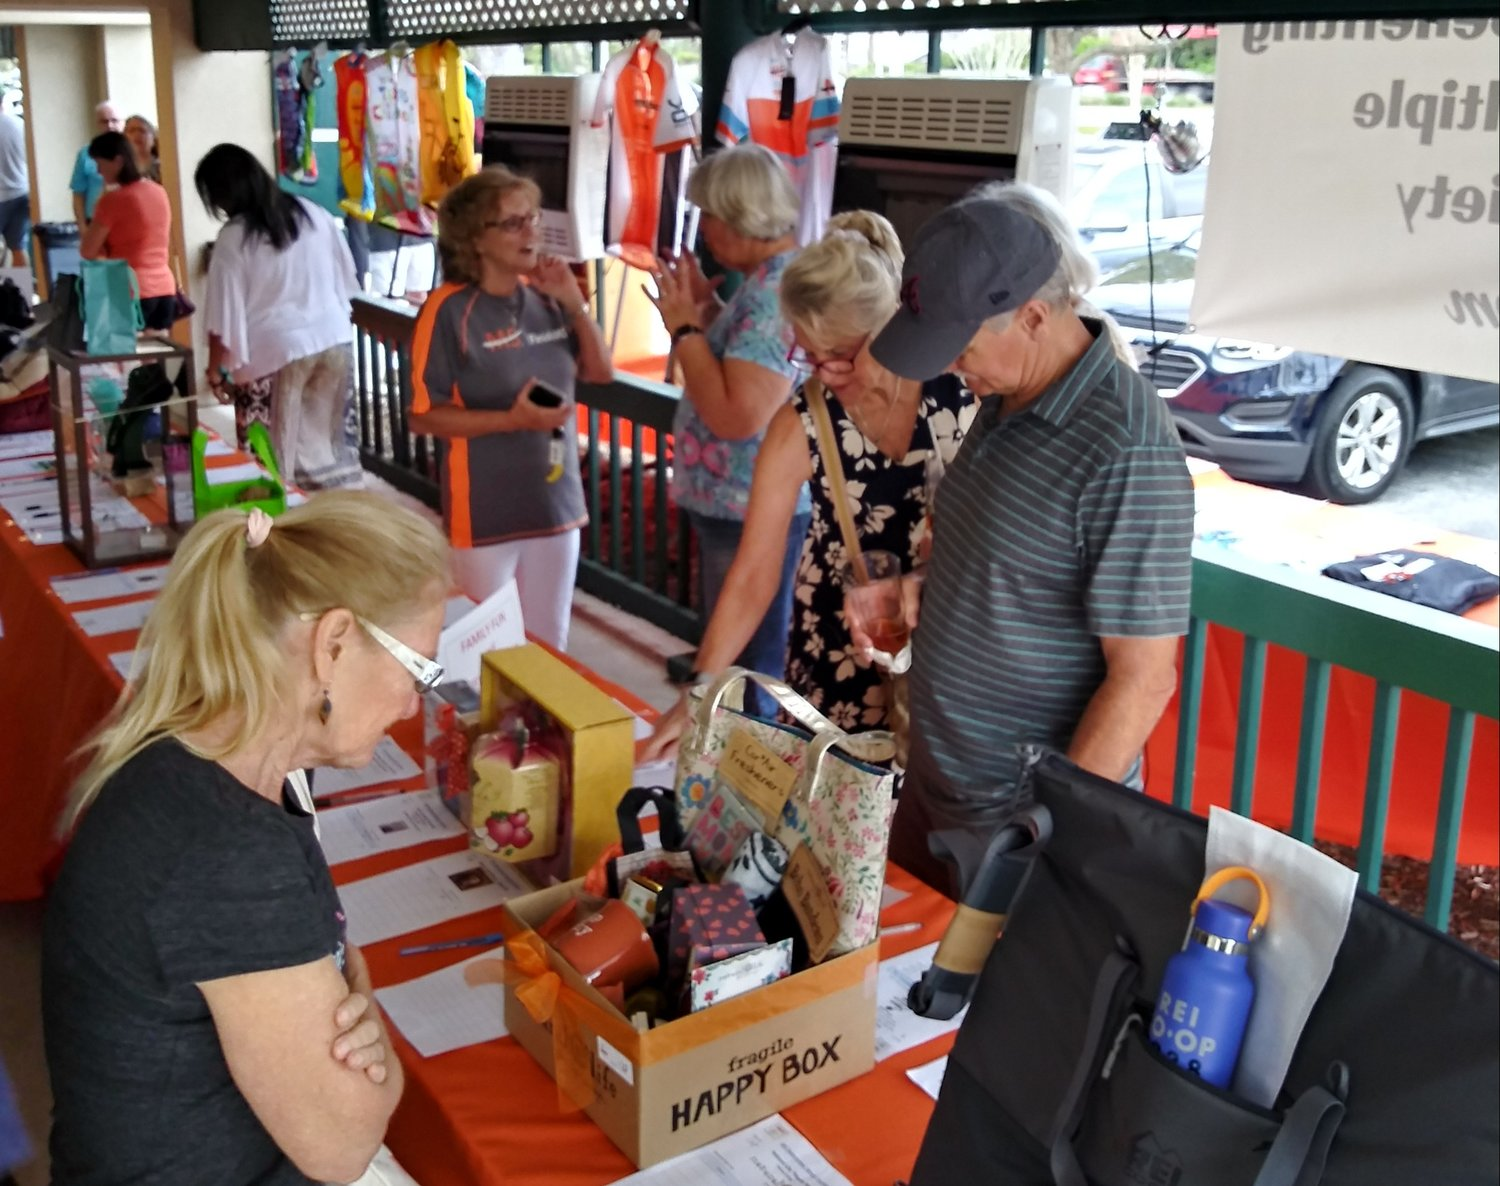 Area residents peruse the recent MS silent auction at Bogey Grille, which raised more than $20,000 for North Floridians impacted by multiple sclerosis.